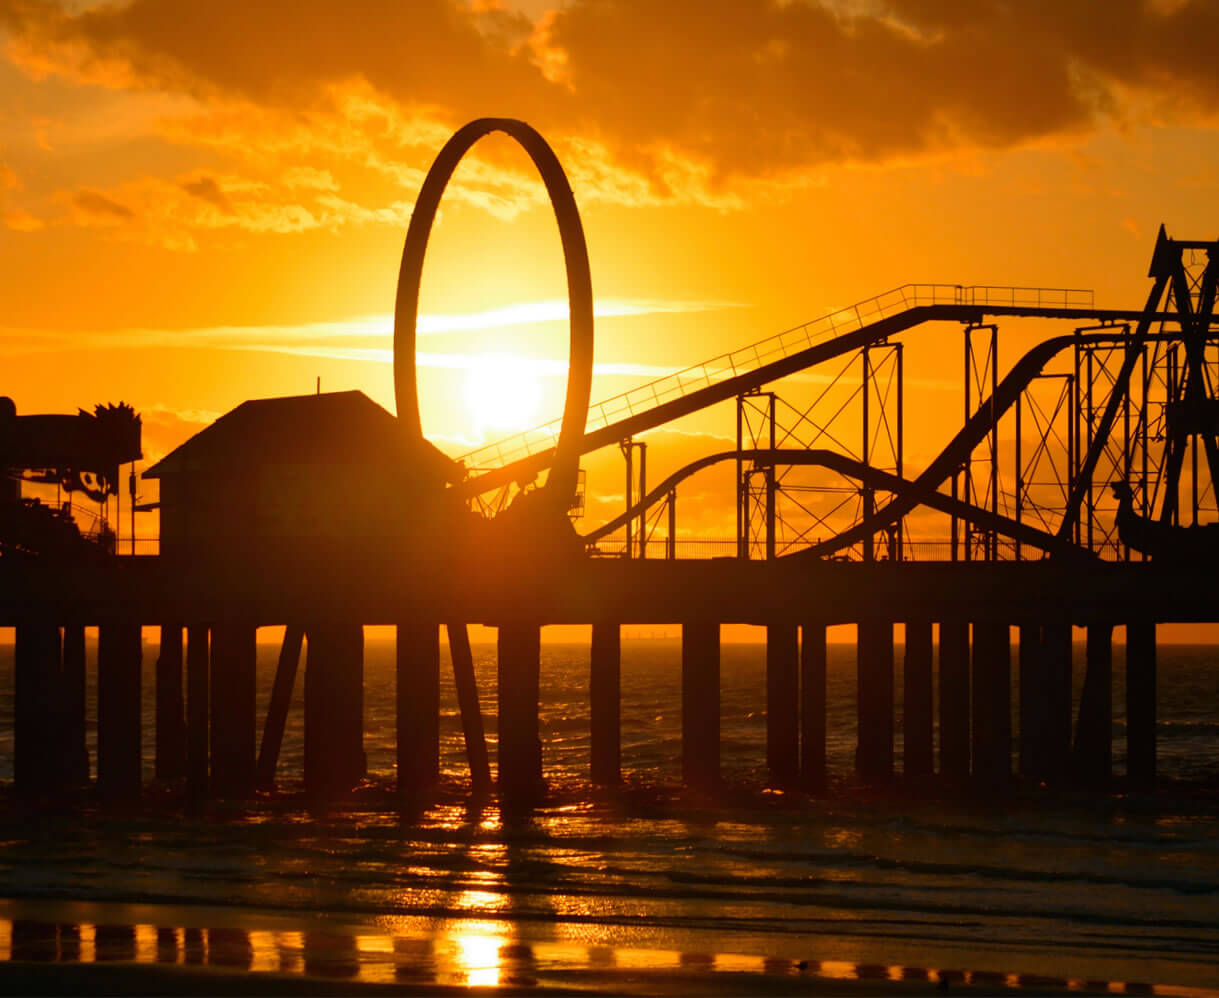 pleasure pier at sunset